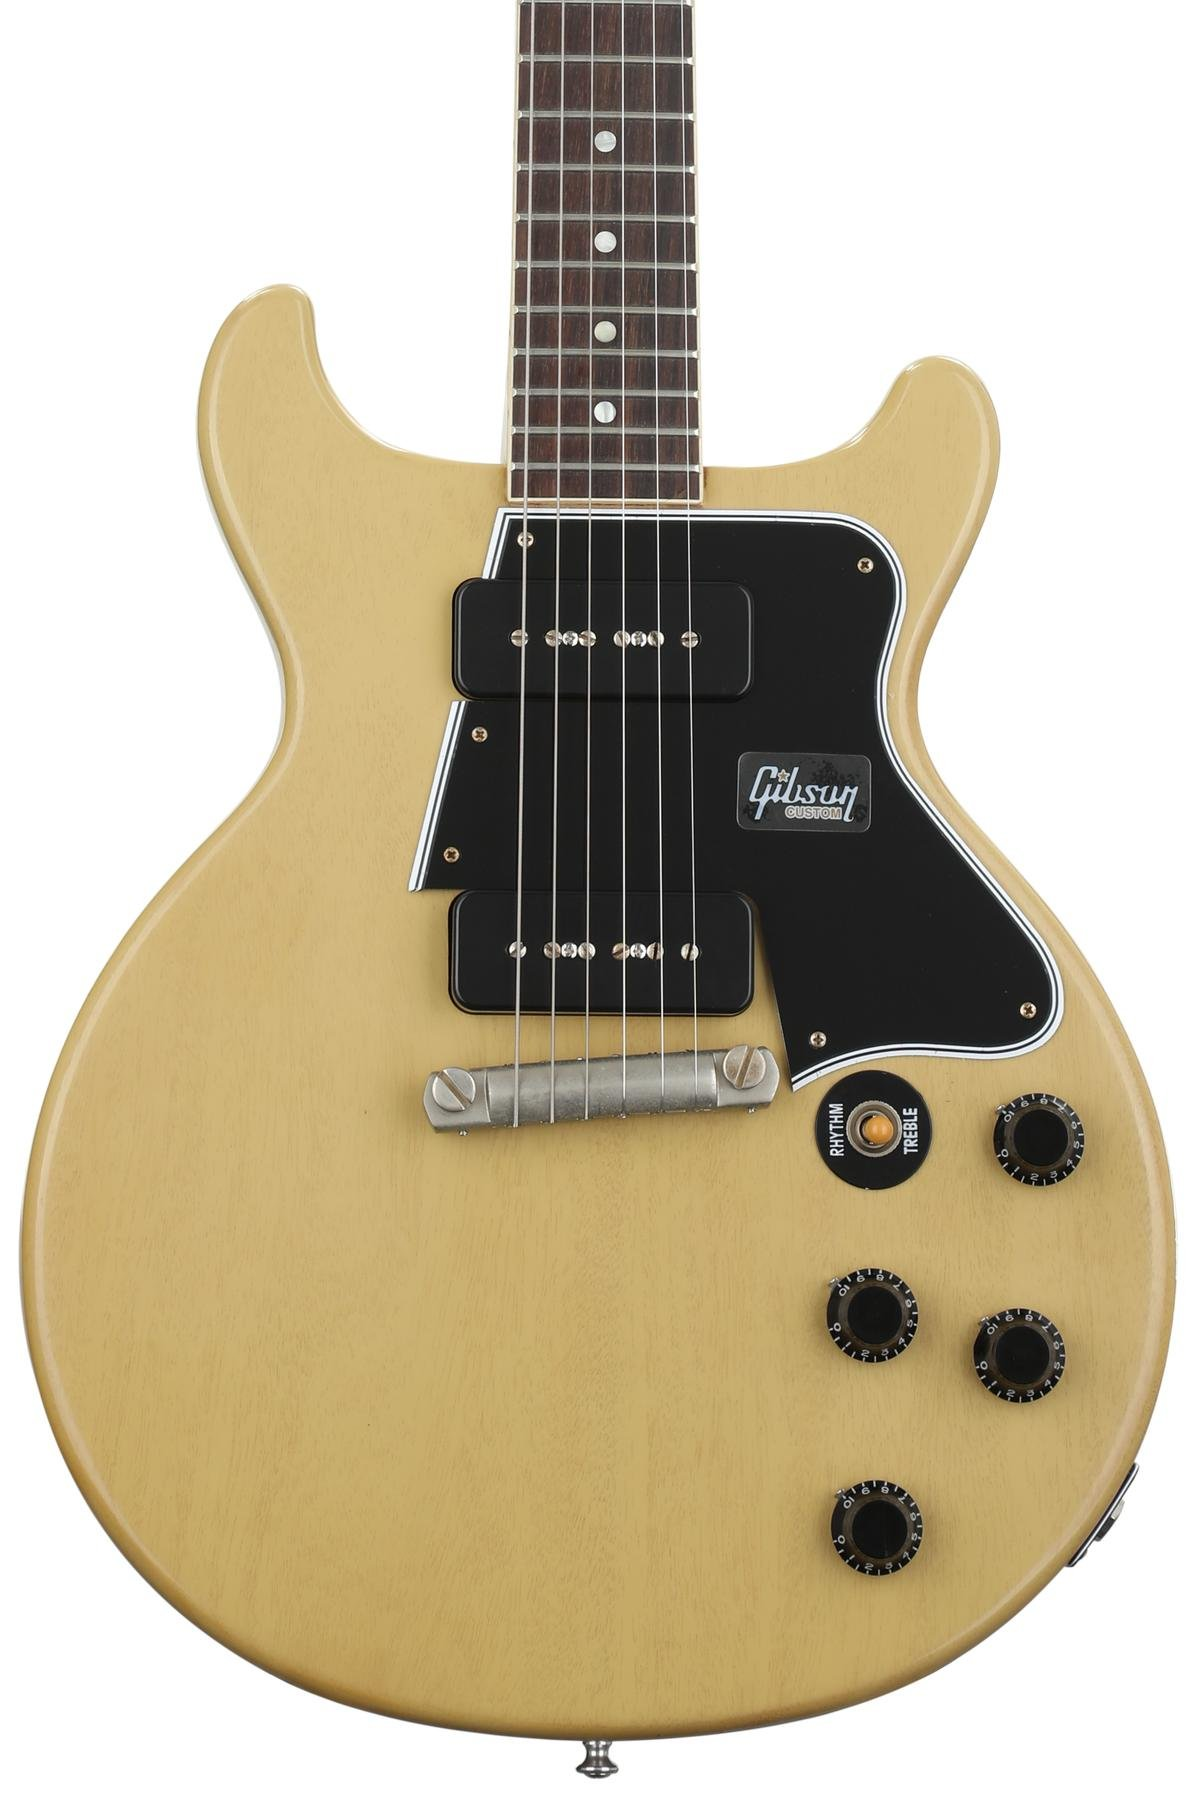 Gibson Custom Historic 1960 Les Paul Special Double Cut VOS - TV Yellow  image 1